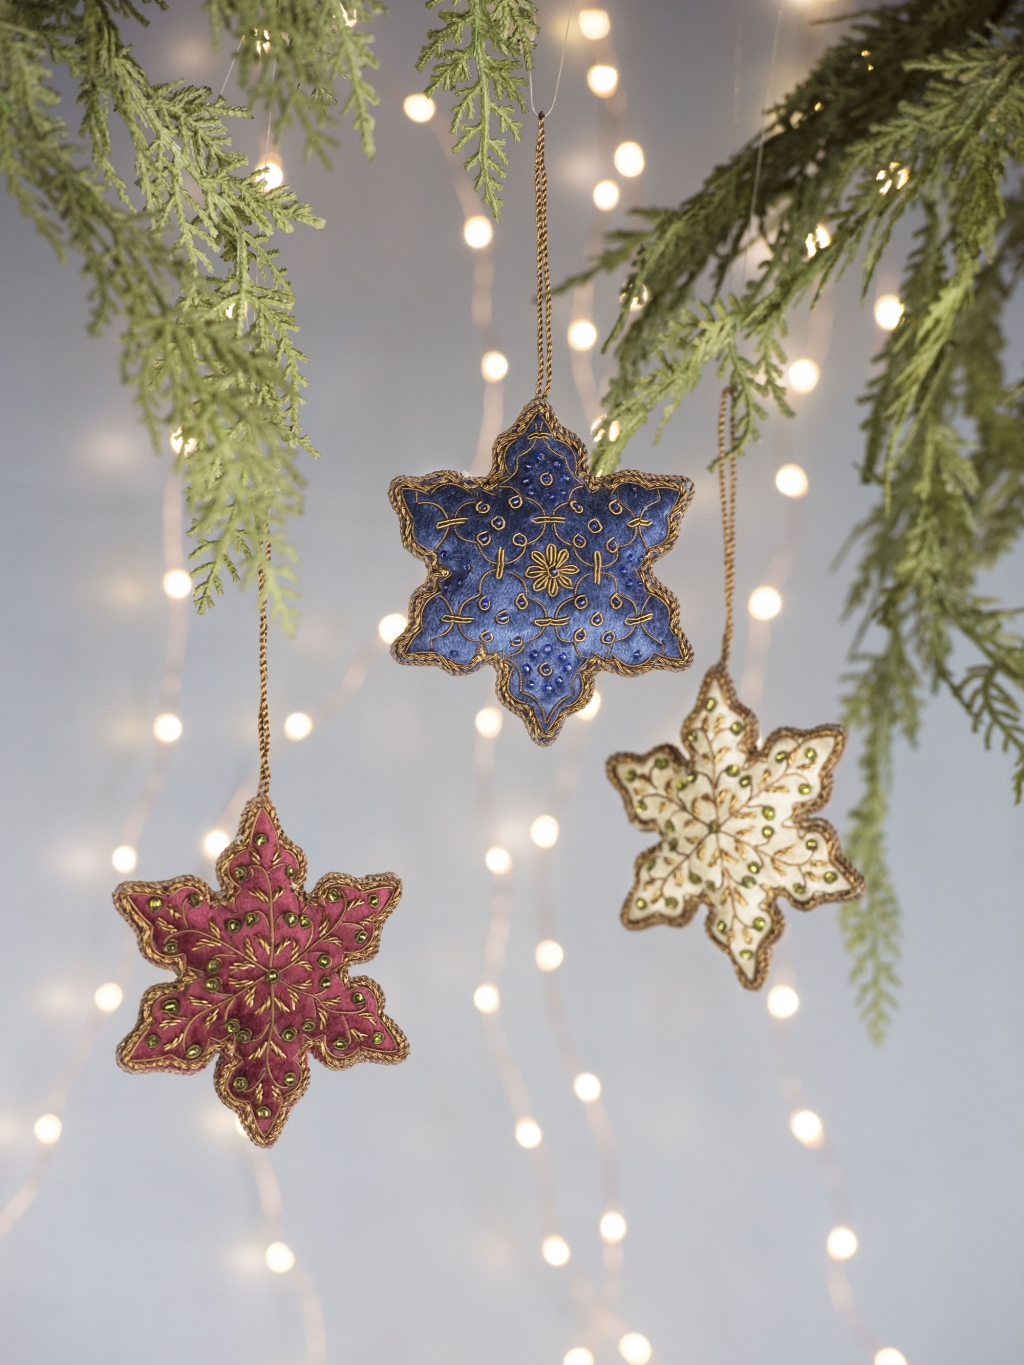 8597596_5793_velvet-snowflake-ornaments-set-of-3.jpg